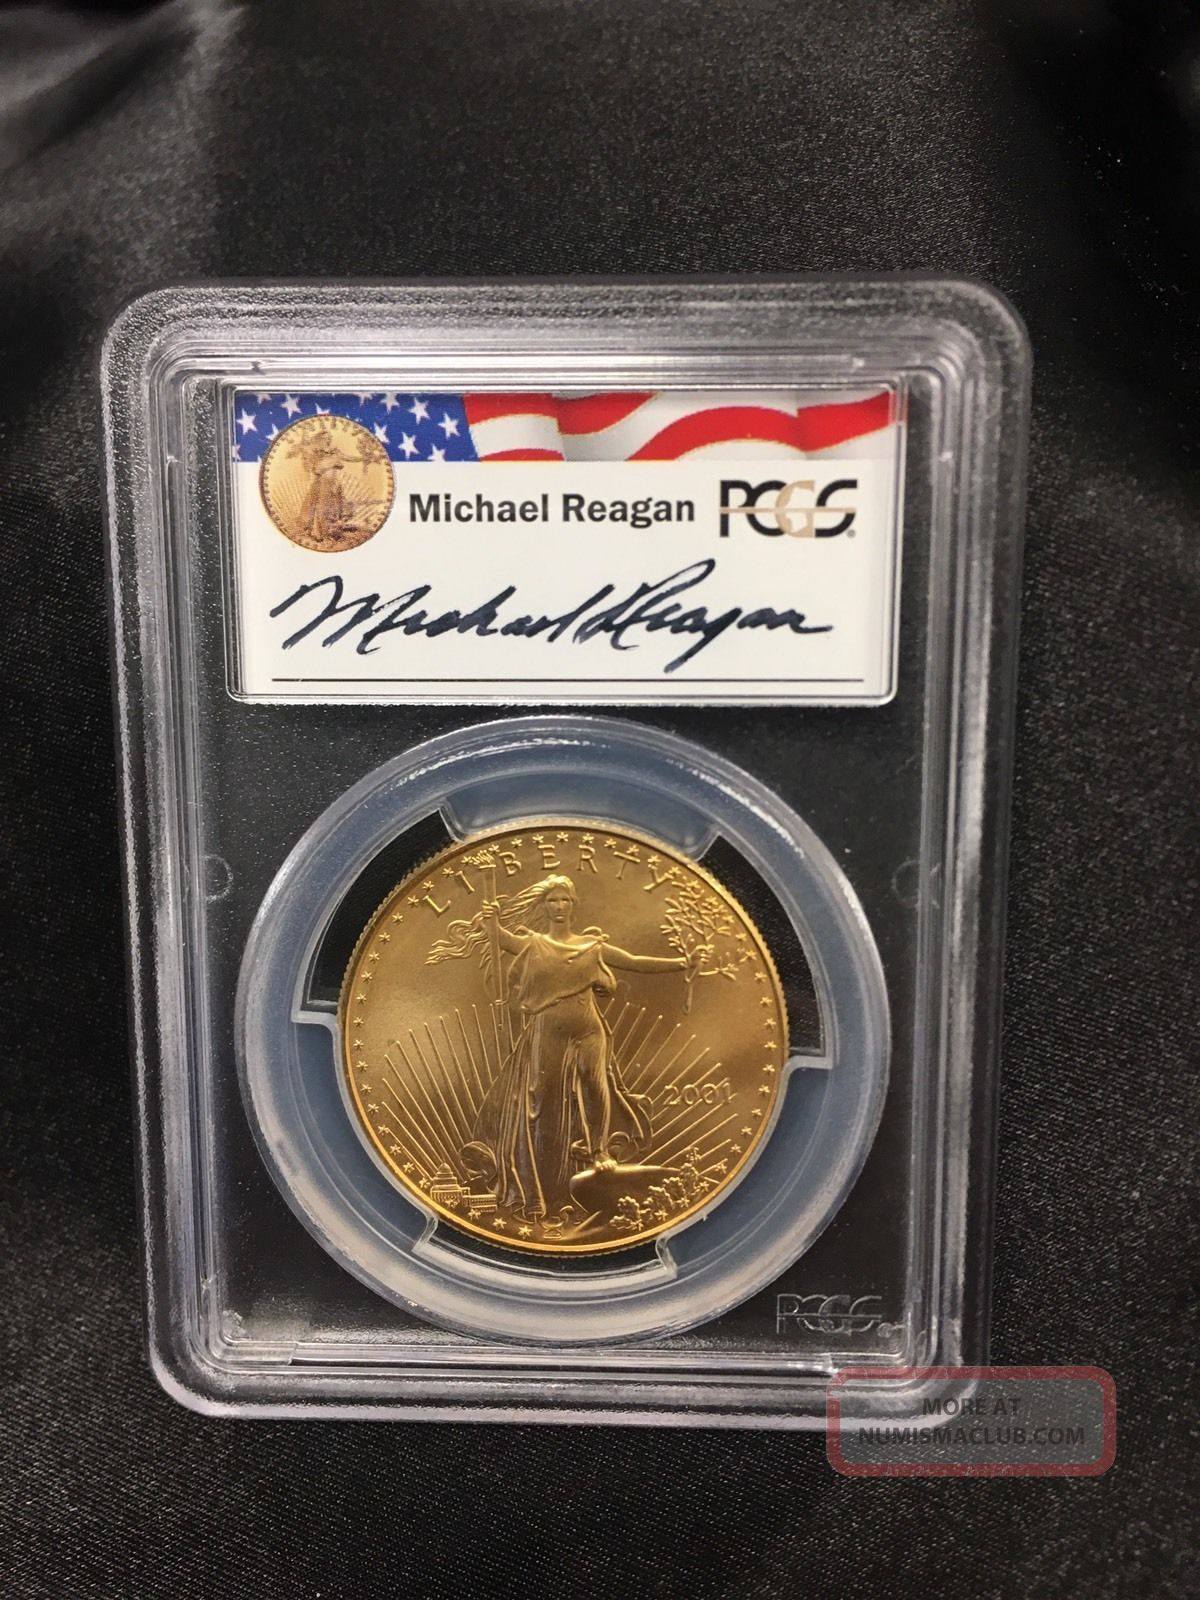 Michael Reagan Gold Coin 2001 50 Pcgs Ms69 Gold Eagle